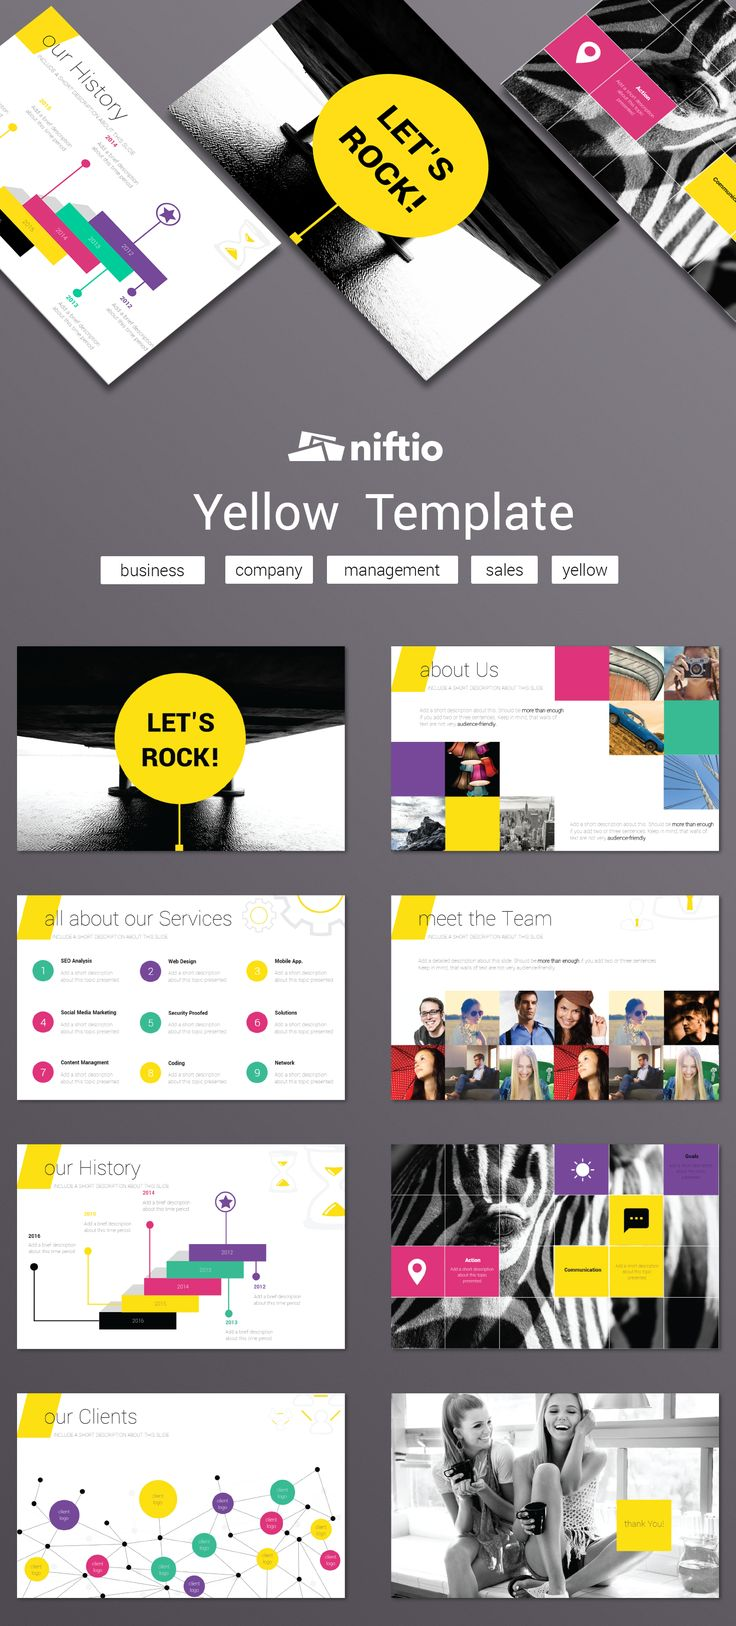 Let the #YellowTemplate help you share your story and rock the stage. #pitch #business #templatethursday